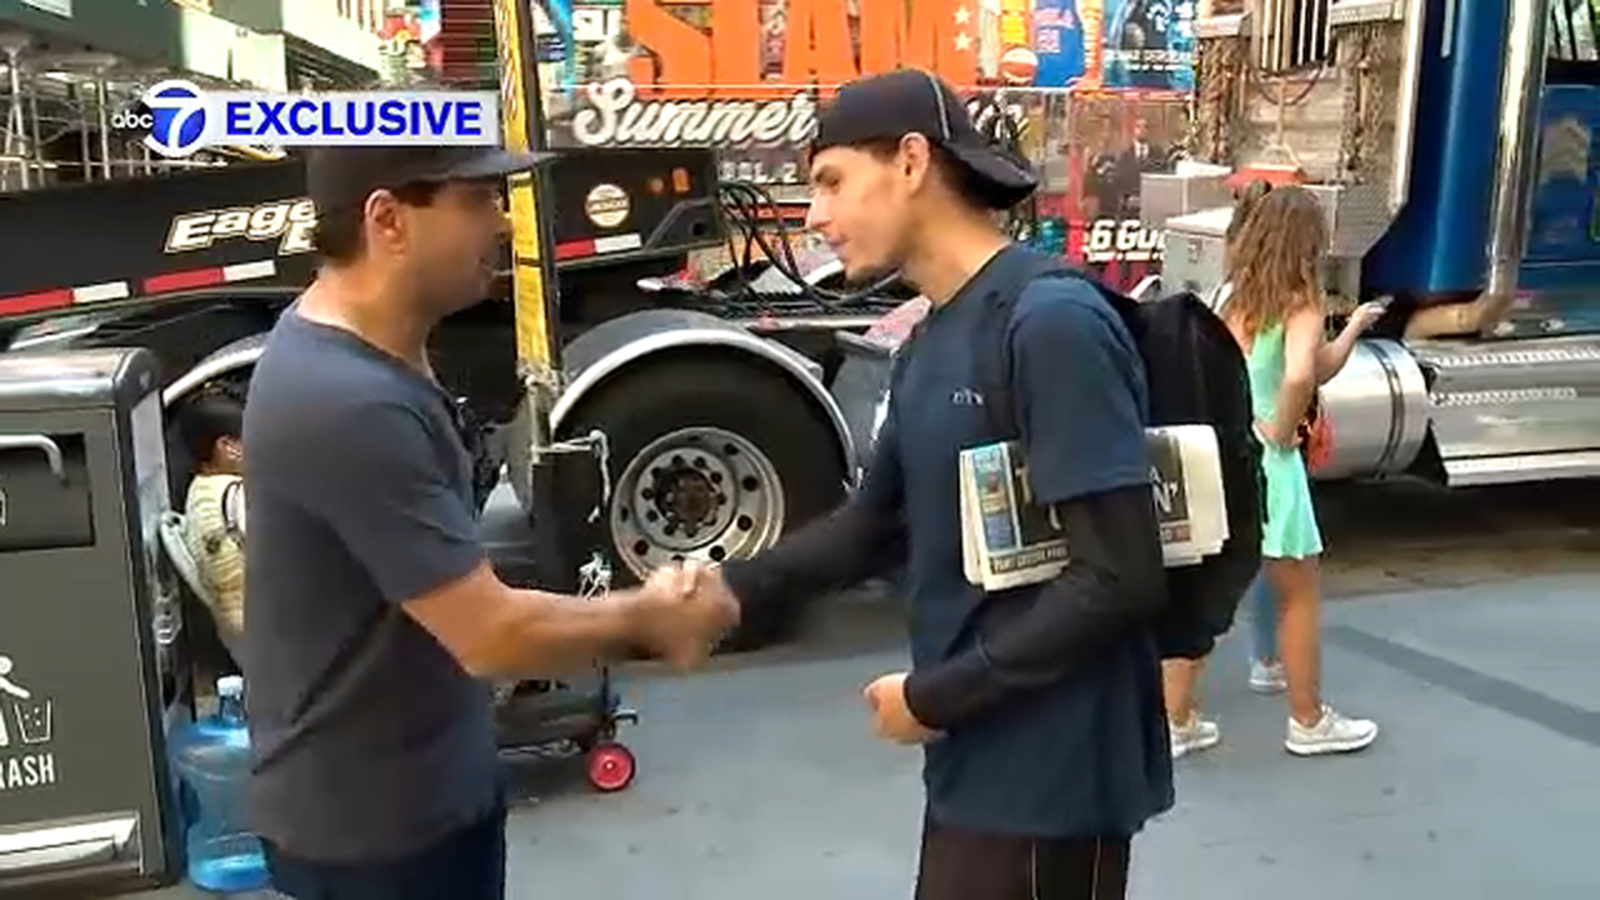 Exclusive: Homeless man given shoes by jogger in NYC now has job offer